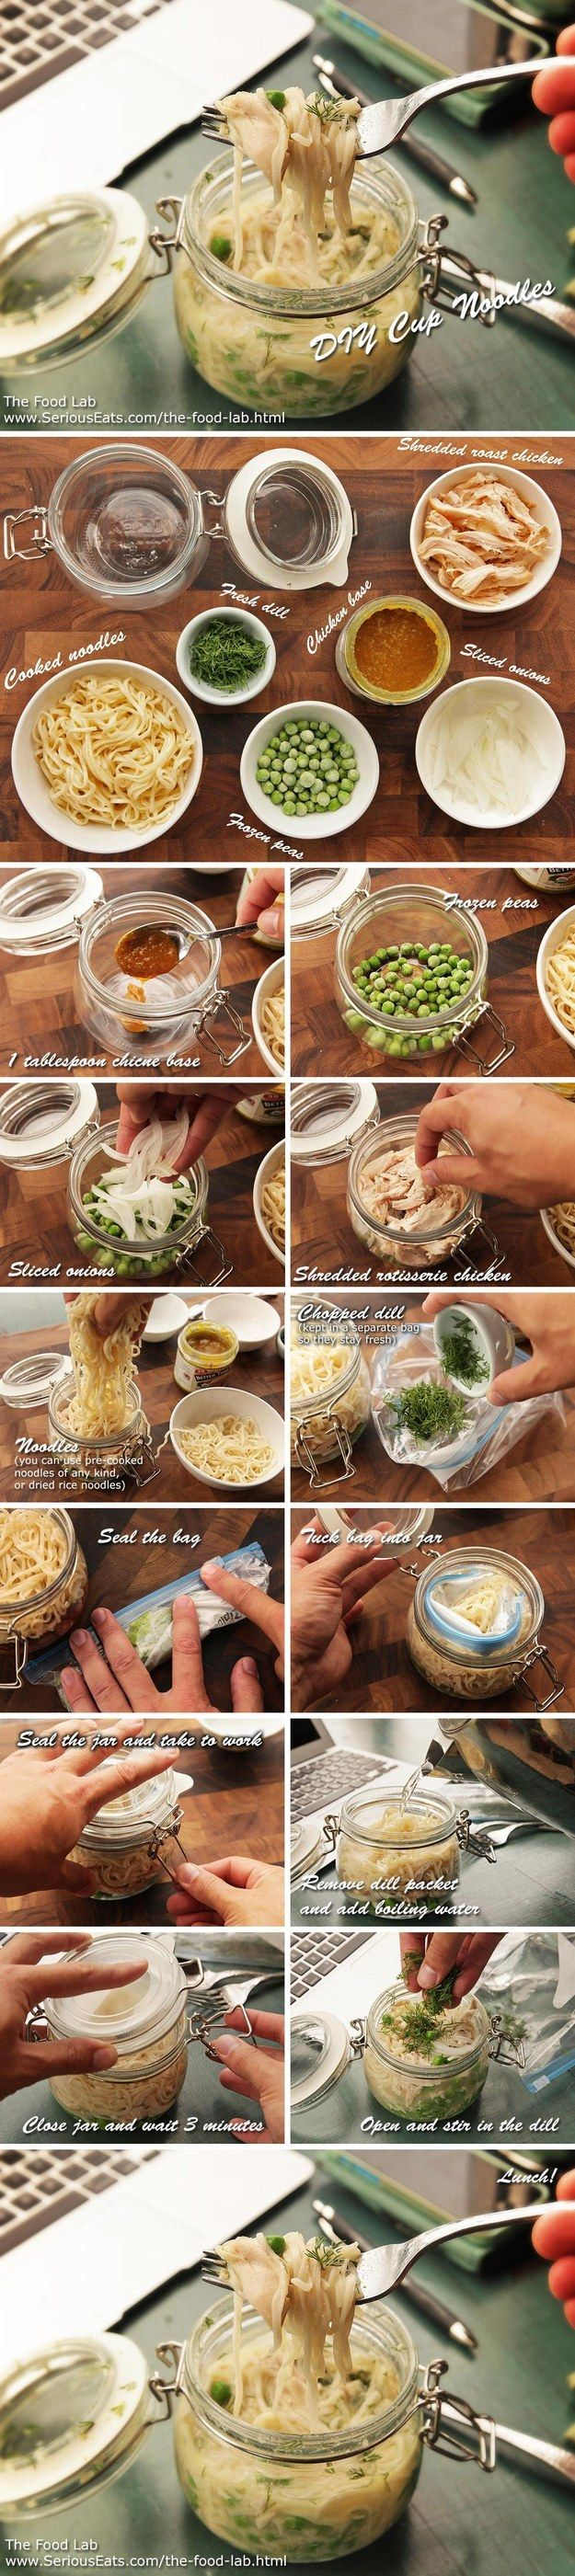 Chicken and Dill DIY Noodles | 15 Easy And Portable Office Lunches